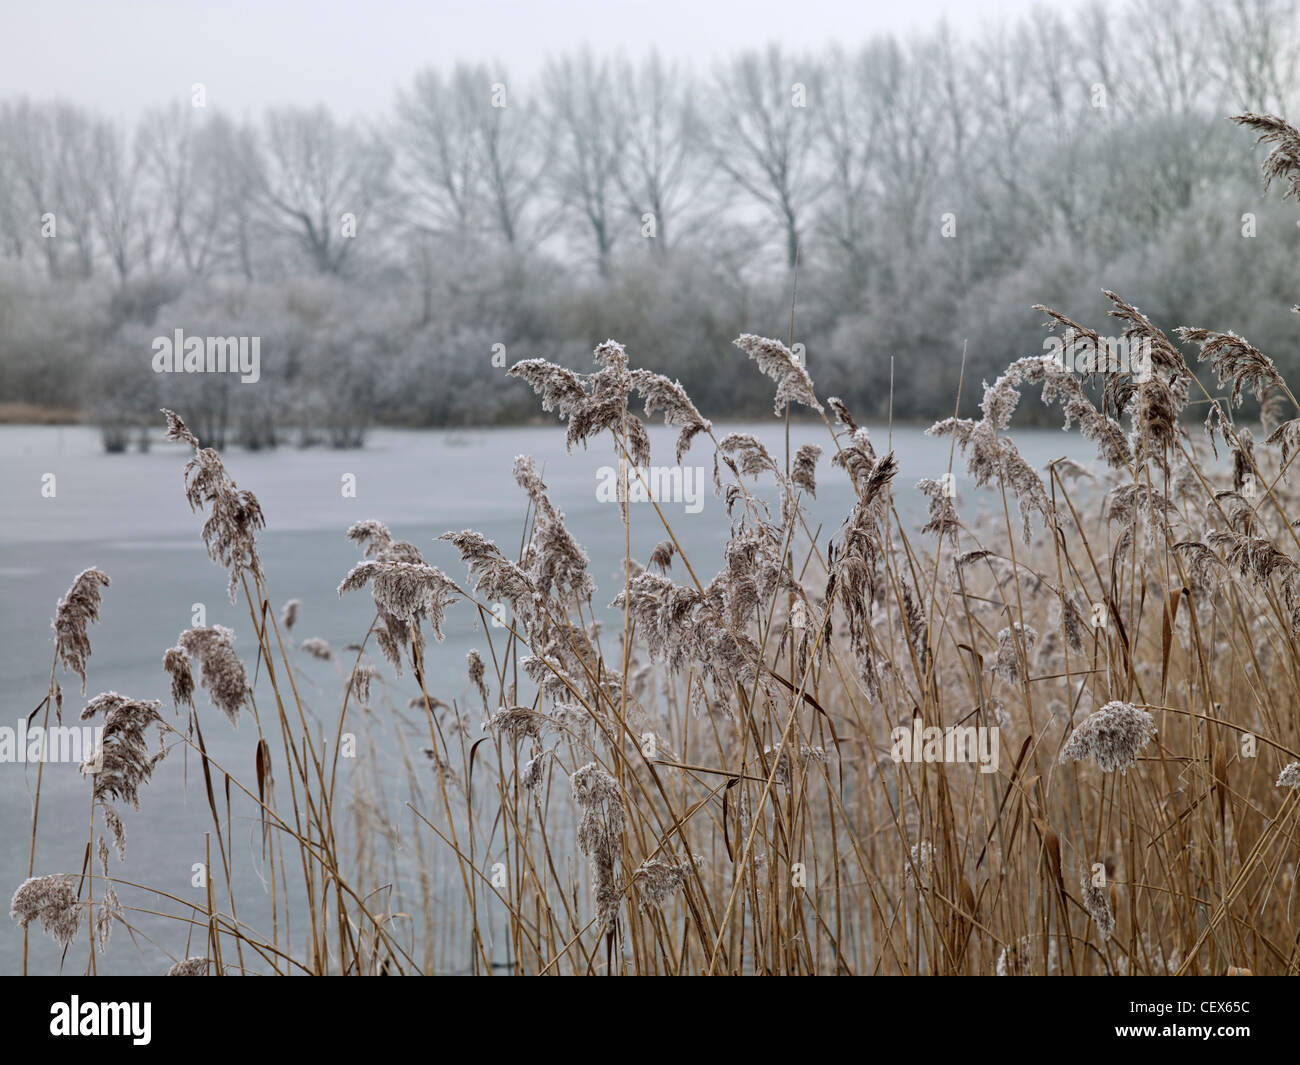 Frosty grass at Swillbrook Lakes, one of the most important nature conservation sites in the Cotswold Water Park. - Stock Image